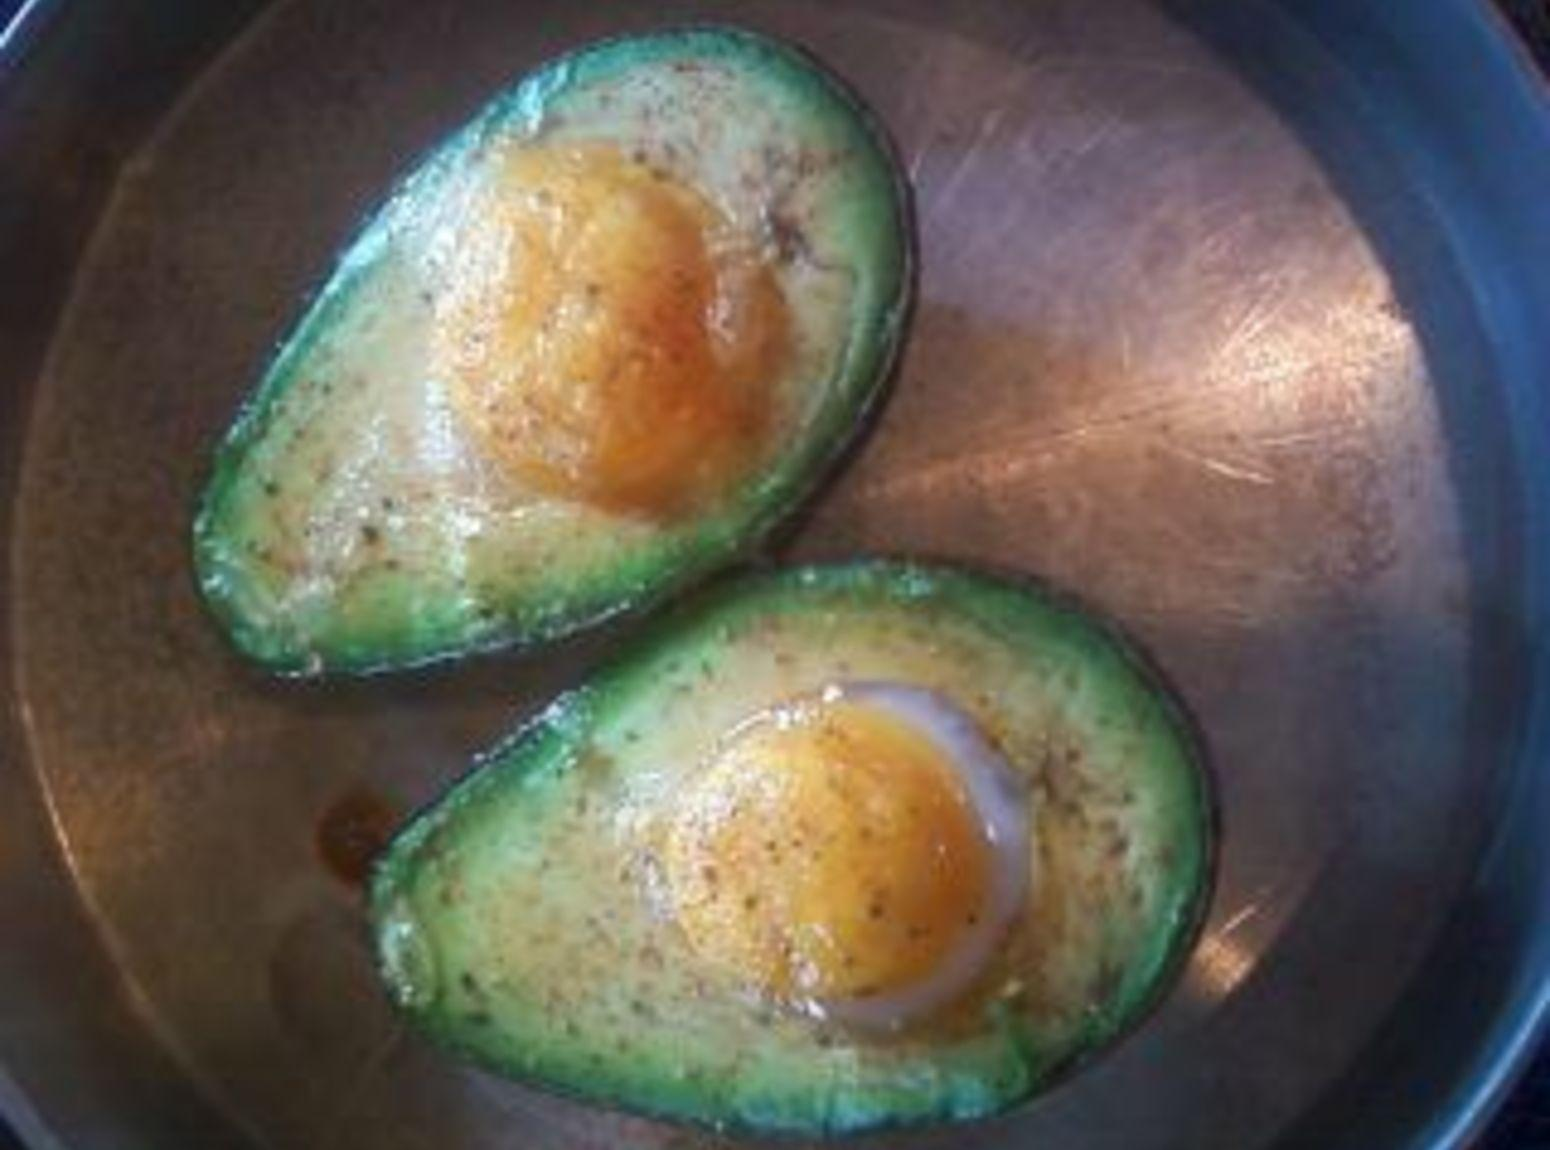 Fancy Avocado & Egg Breakfast Recipe